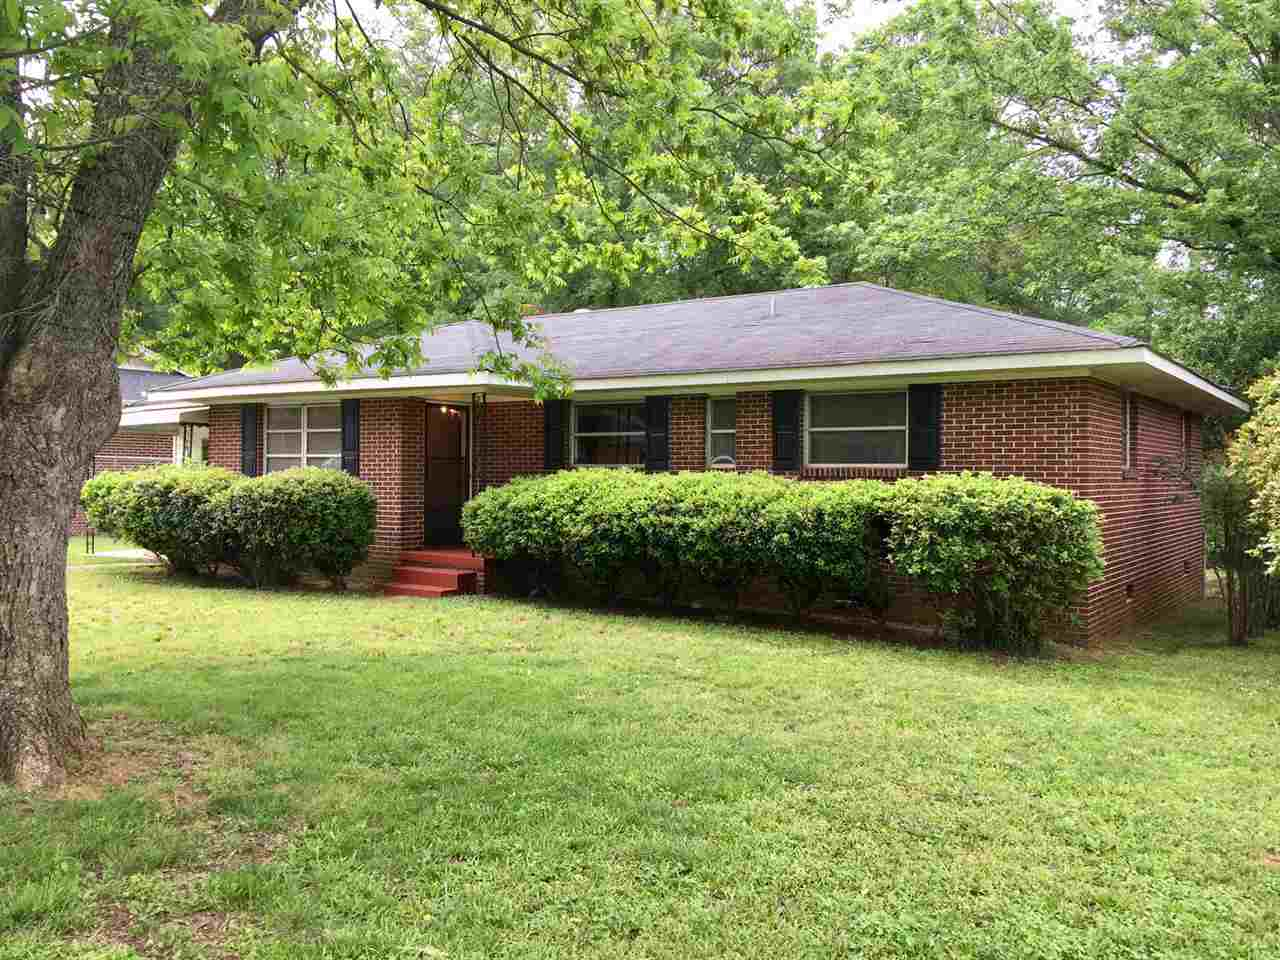 Photo of 517 W Fredericks St  Anderson  SC